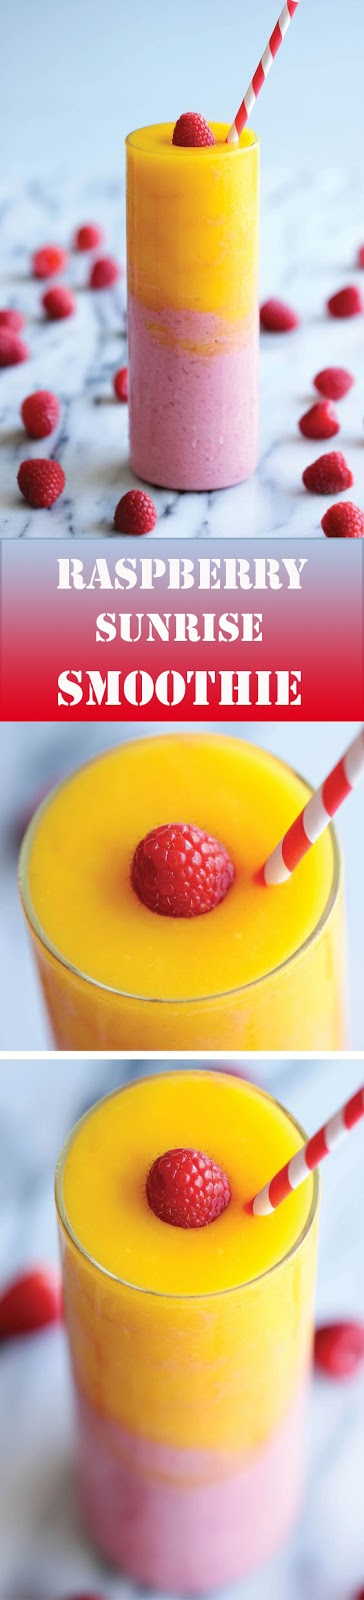 Raspberry Sunrise #Smoothie #drinks #recipes